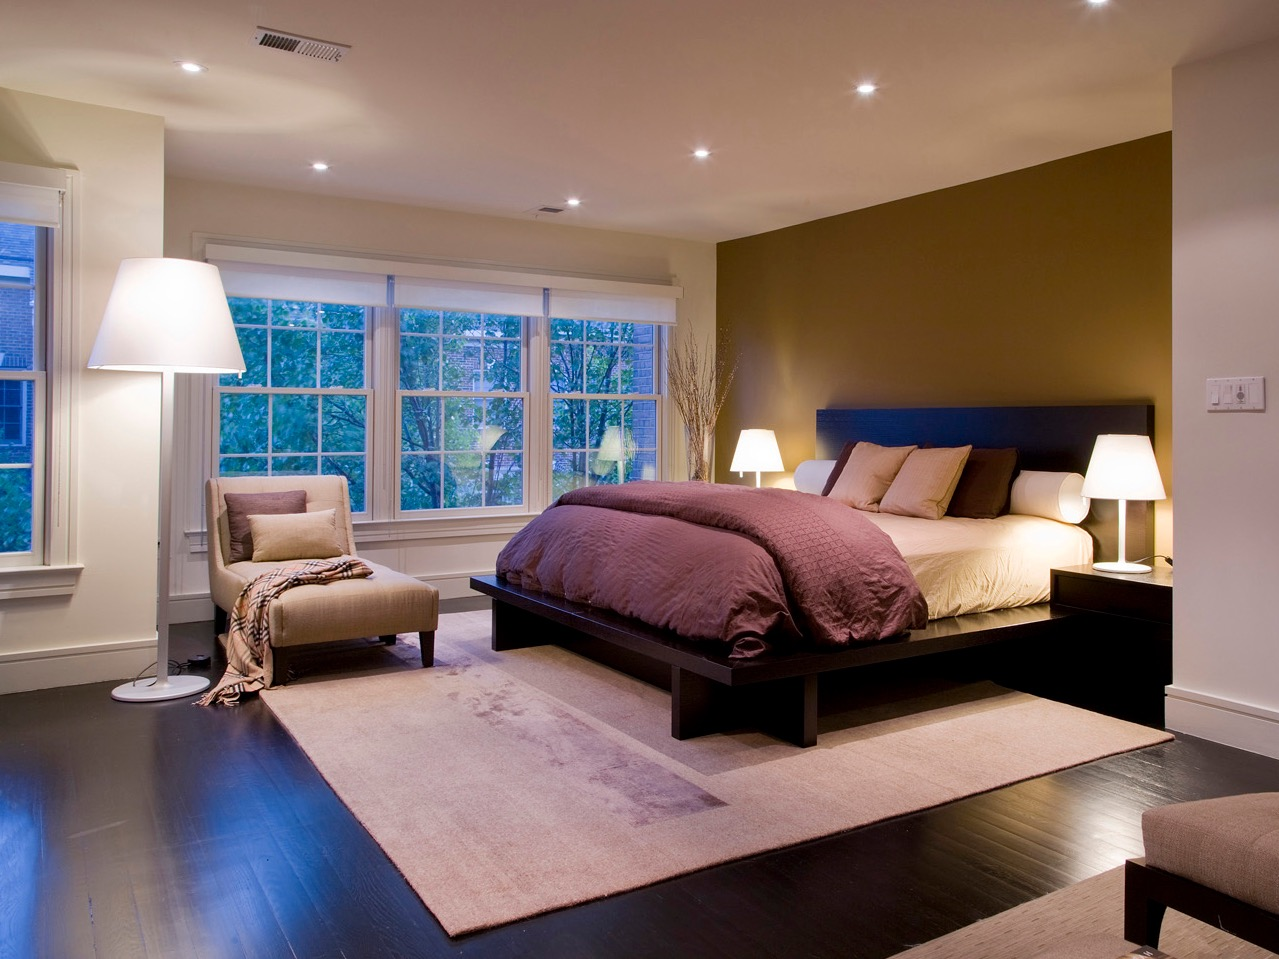 Deluxe Modern Bedroom Decor For Limited Interior Space (View 12 of 16)